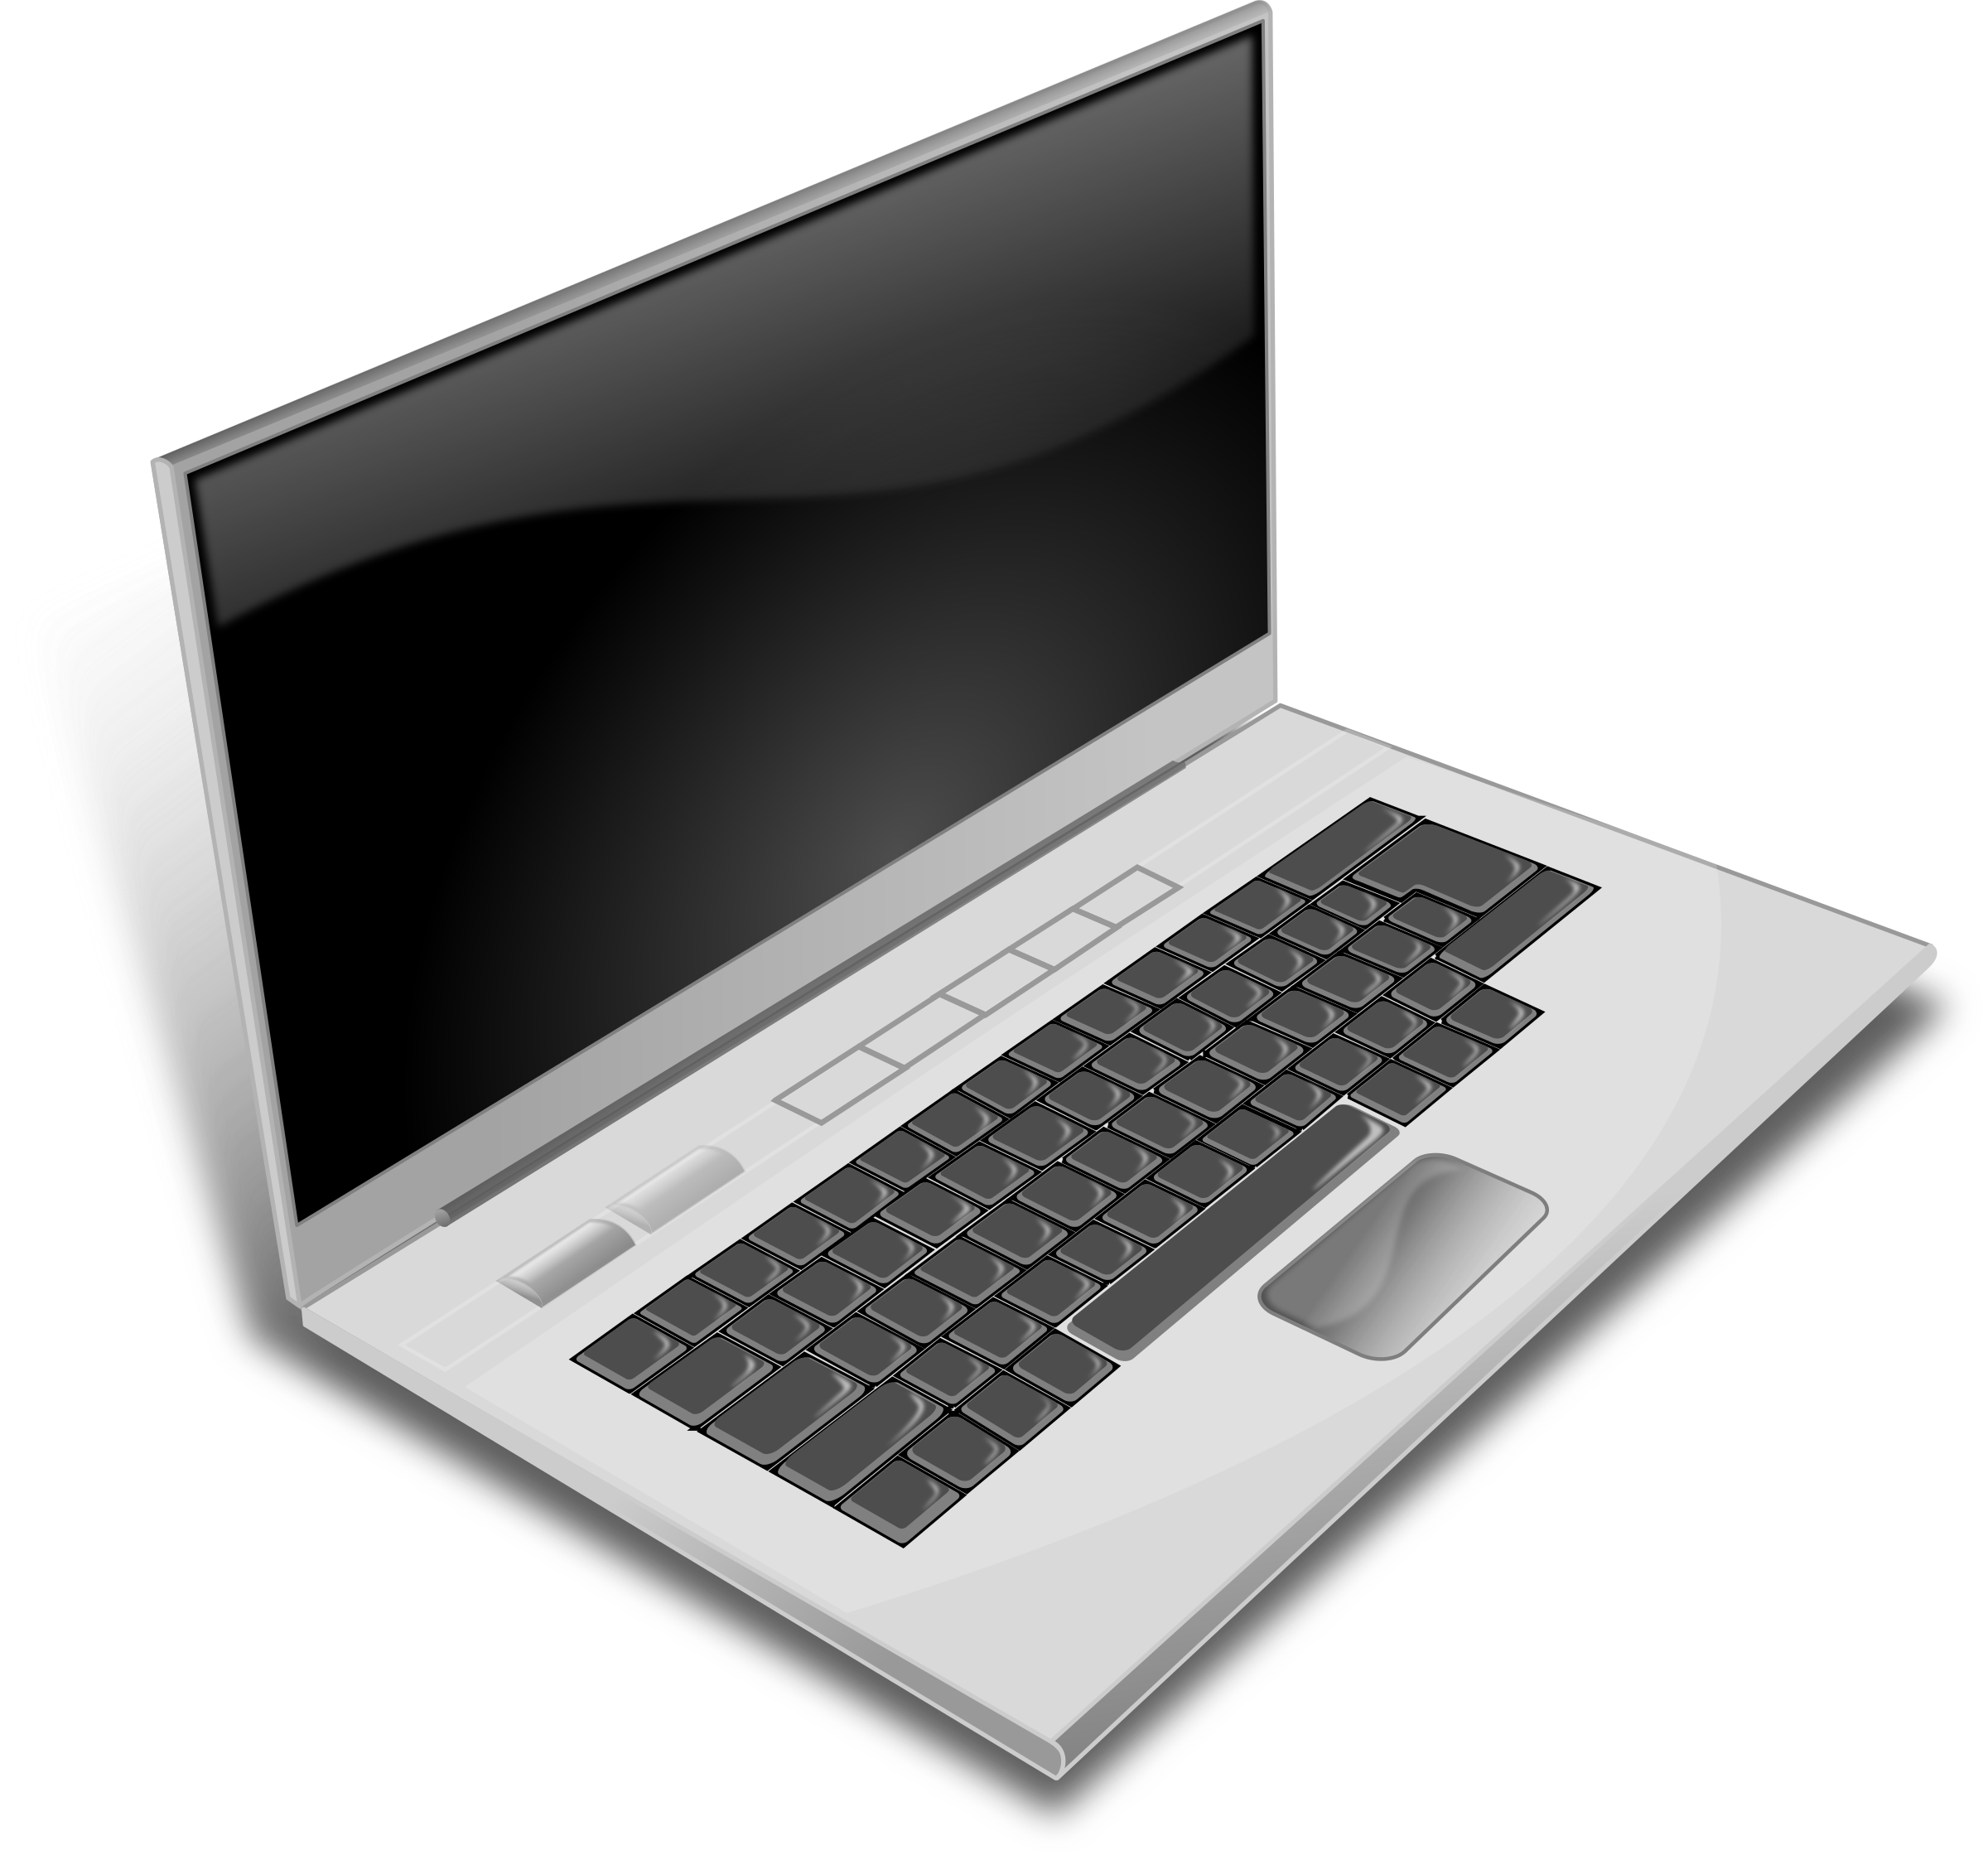 A gray laptop by Minduka